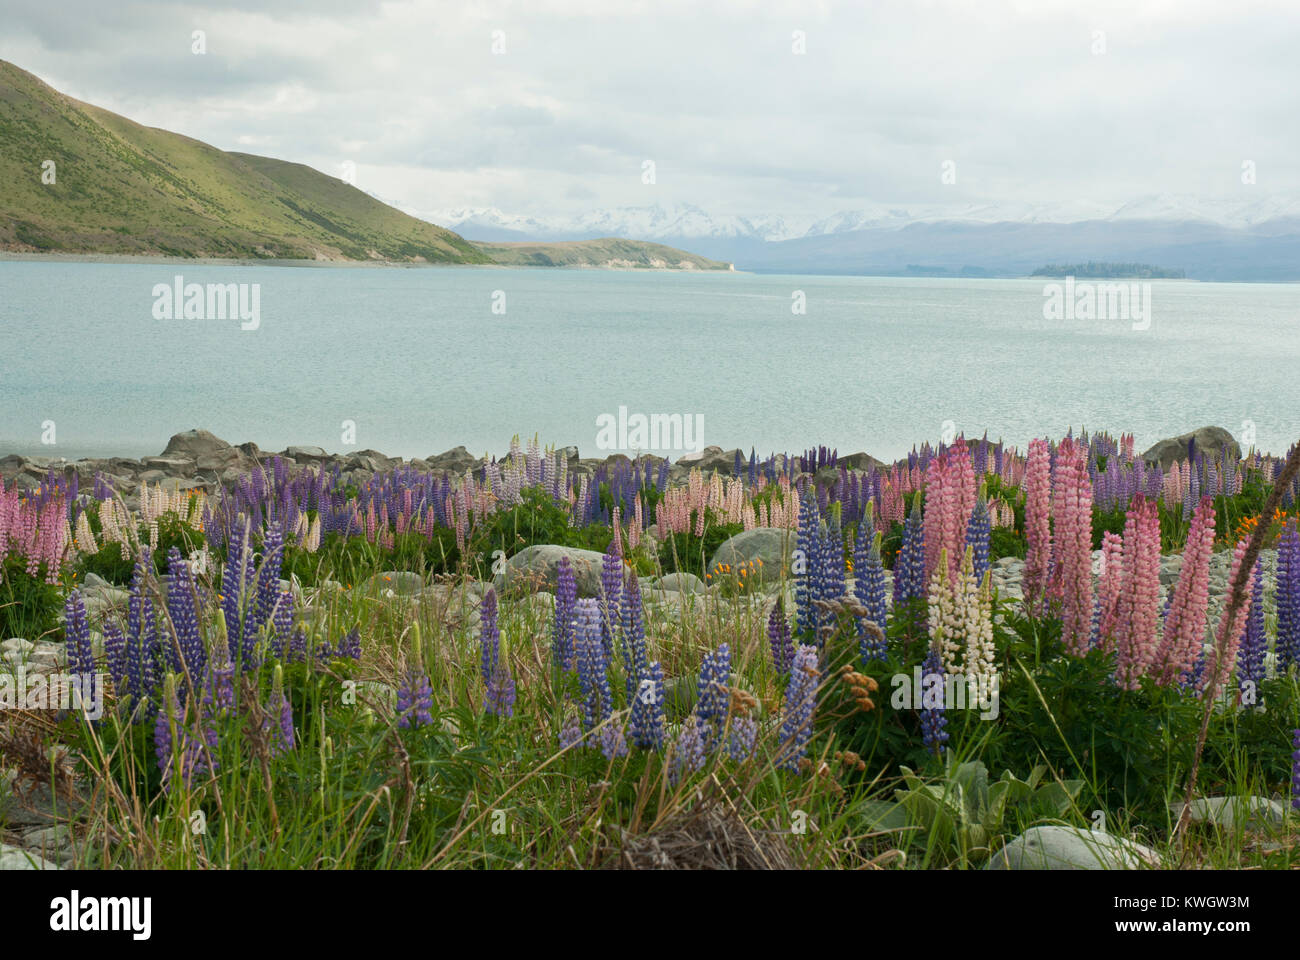 Stunning and colourful landscape of Lake Tekapo, Spring/ Summer, with blue lake surrounded by snow capped mountains Stock Photo